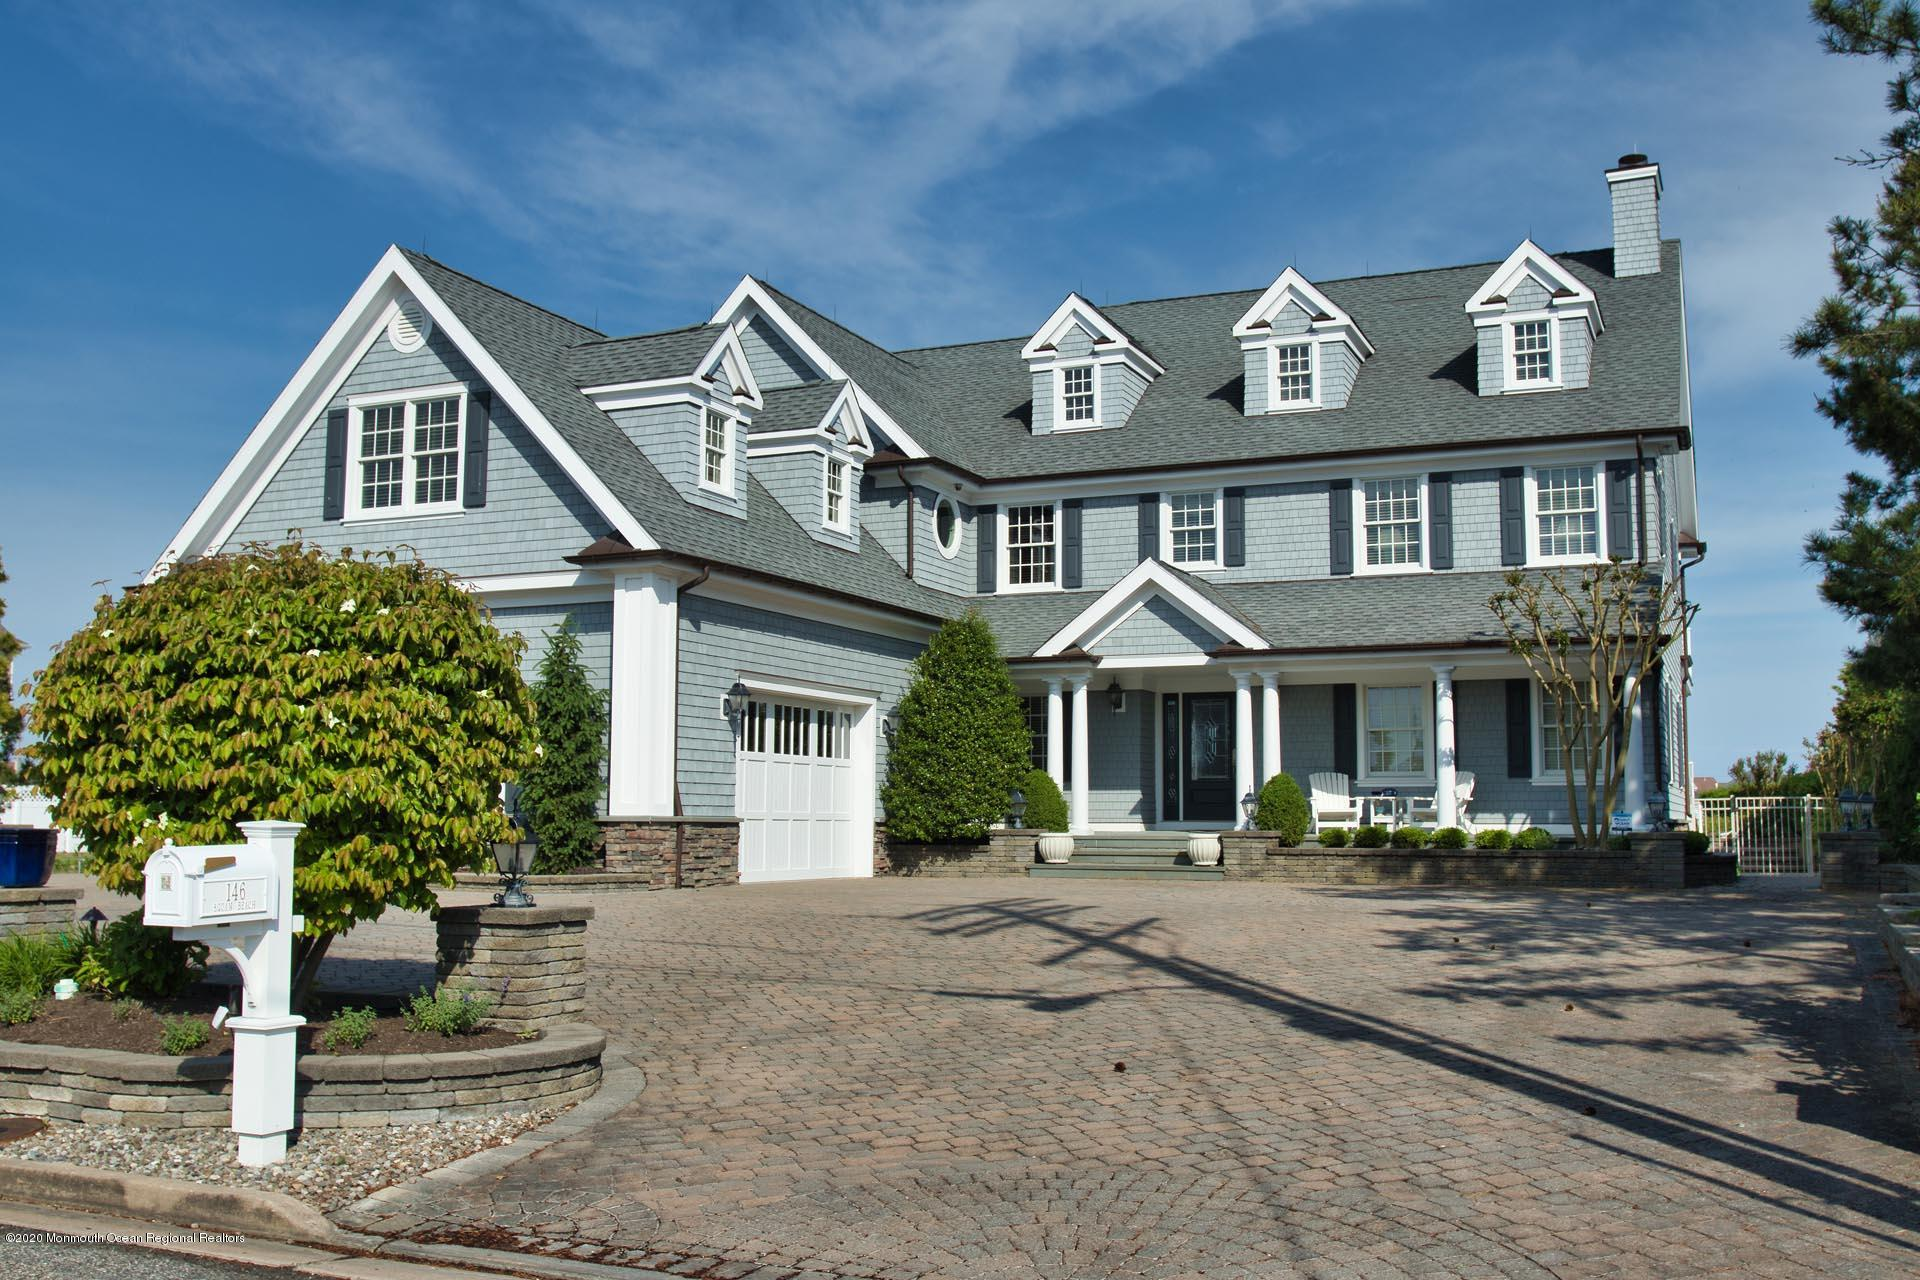 146 Squan Beach Drive, Mantoloking, New Jersey 08738, 4 Bedrooms Bedrooms, ,5 BathroomsBathrooms,Single Family,For Sale,146 Squan Beach Drive,2,22037918